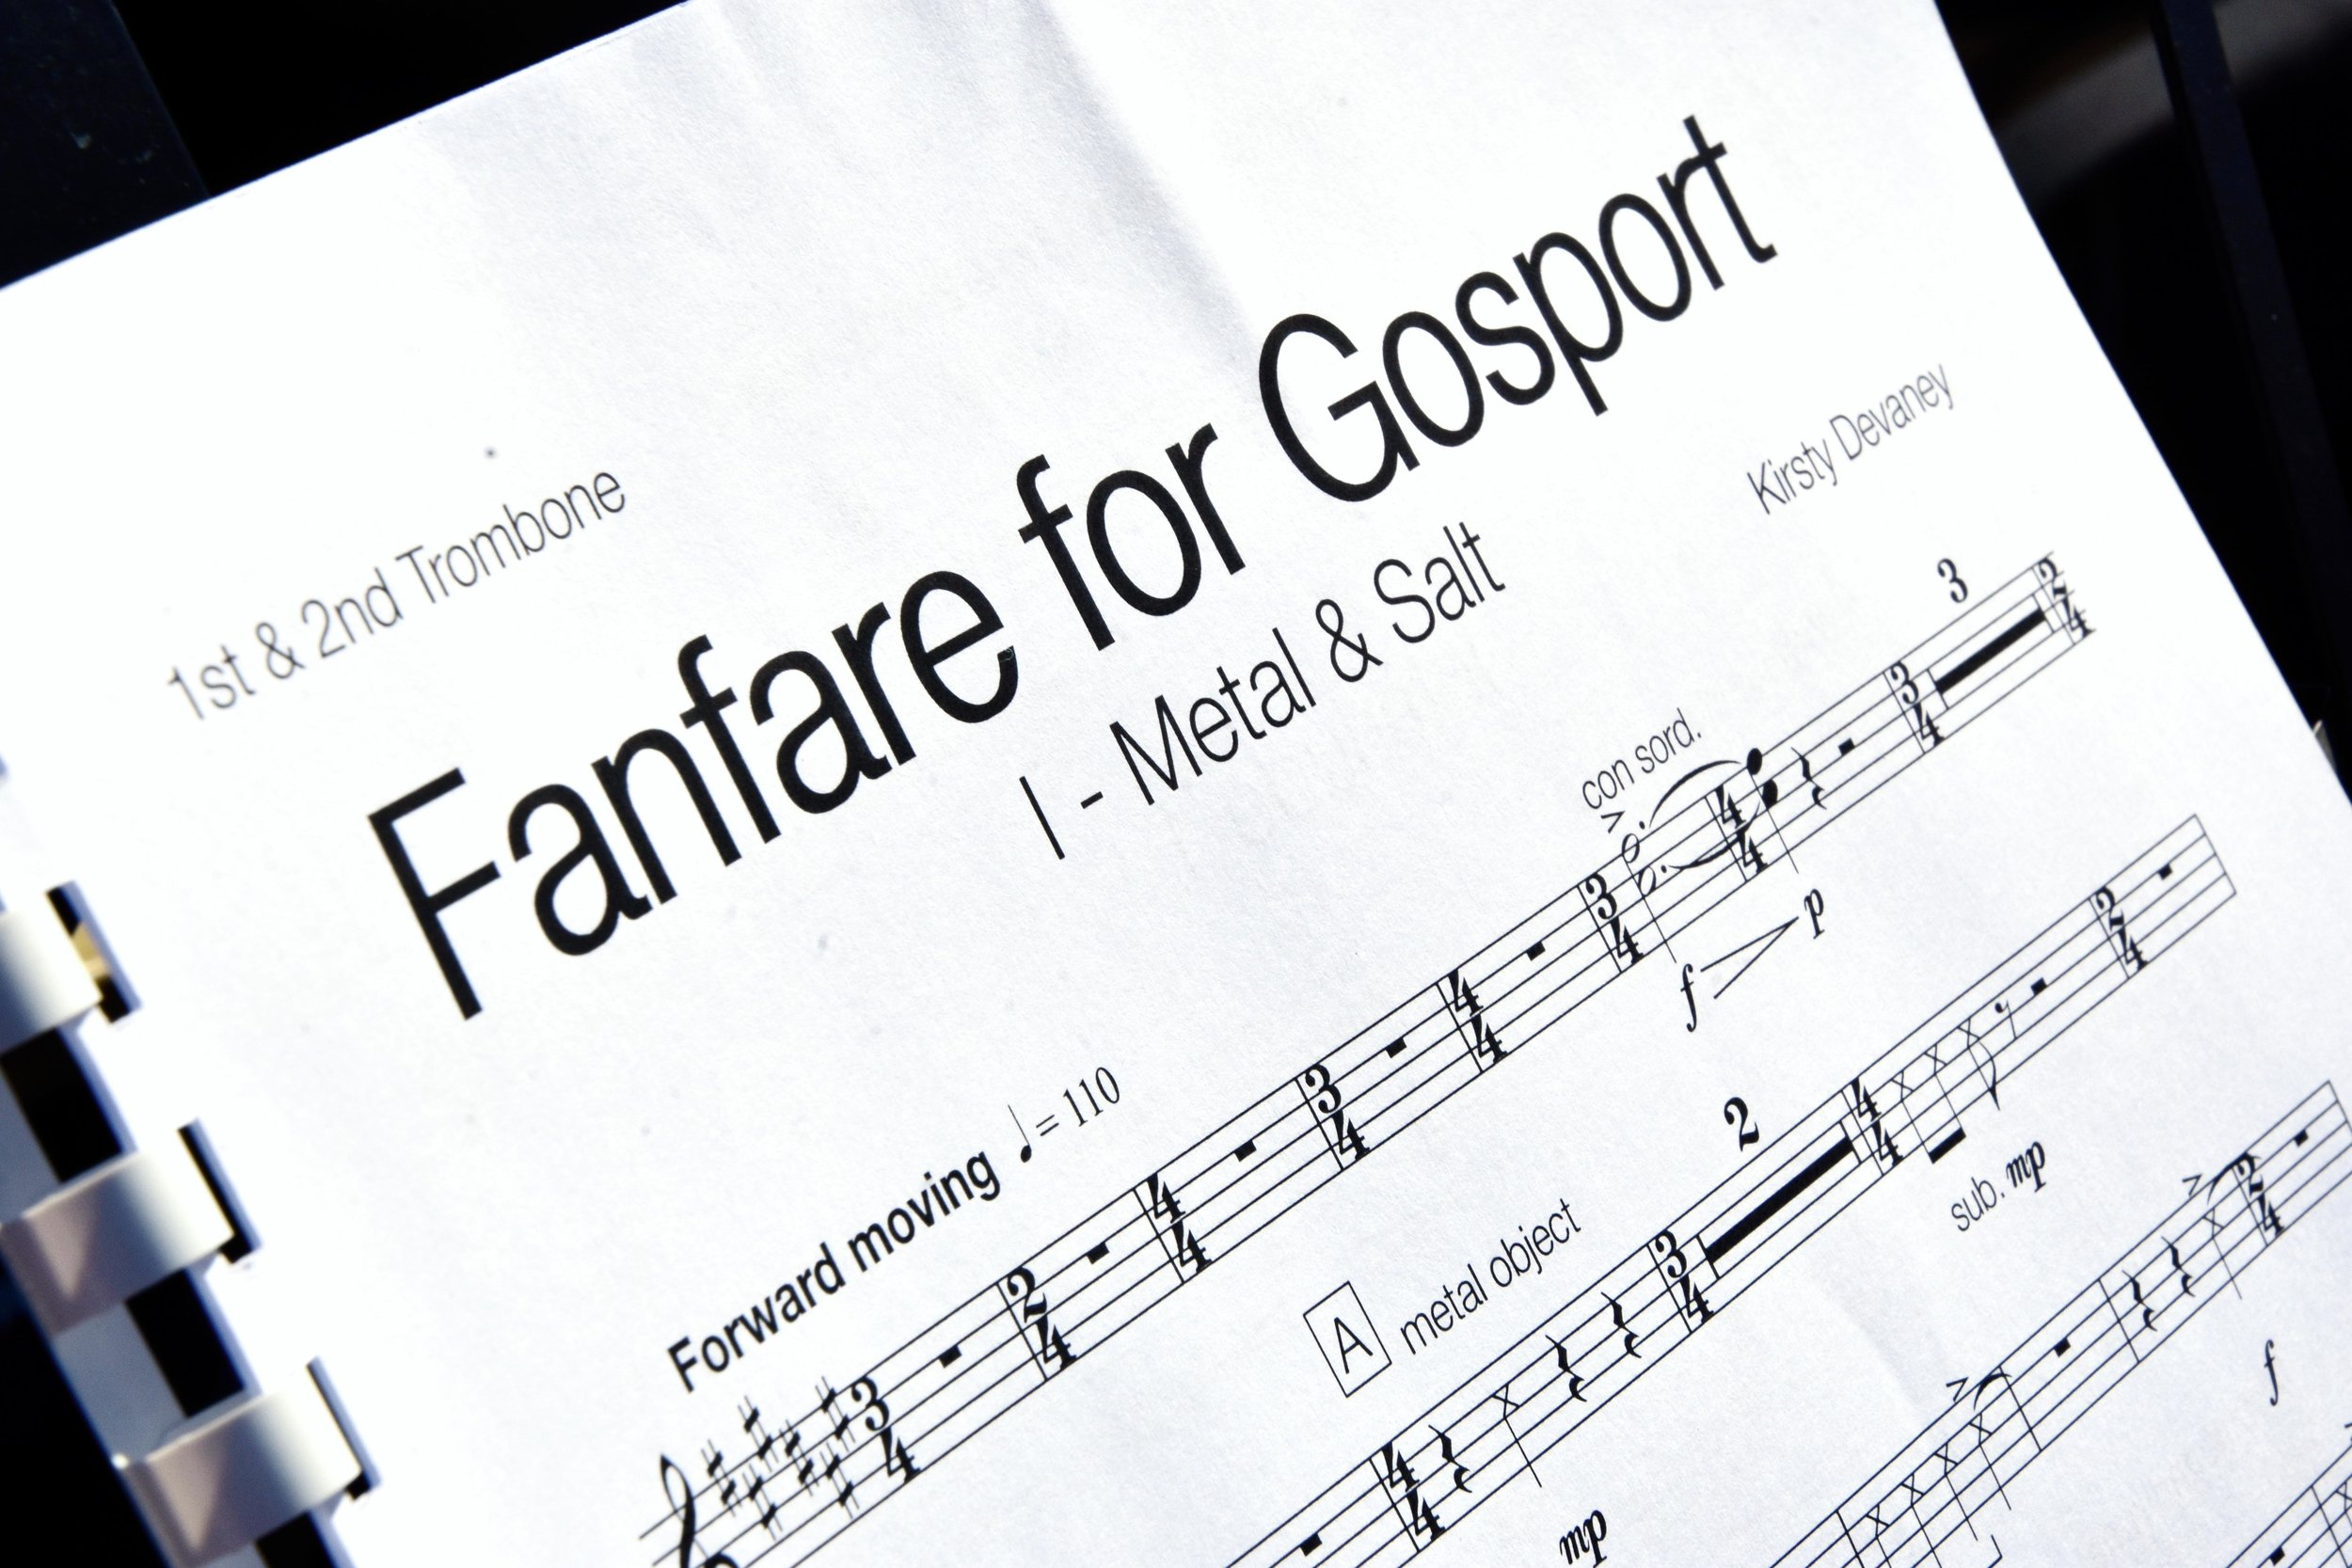 Fanfare for Gosport by Kirsty Devaney